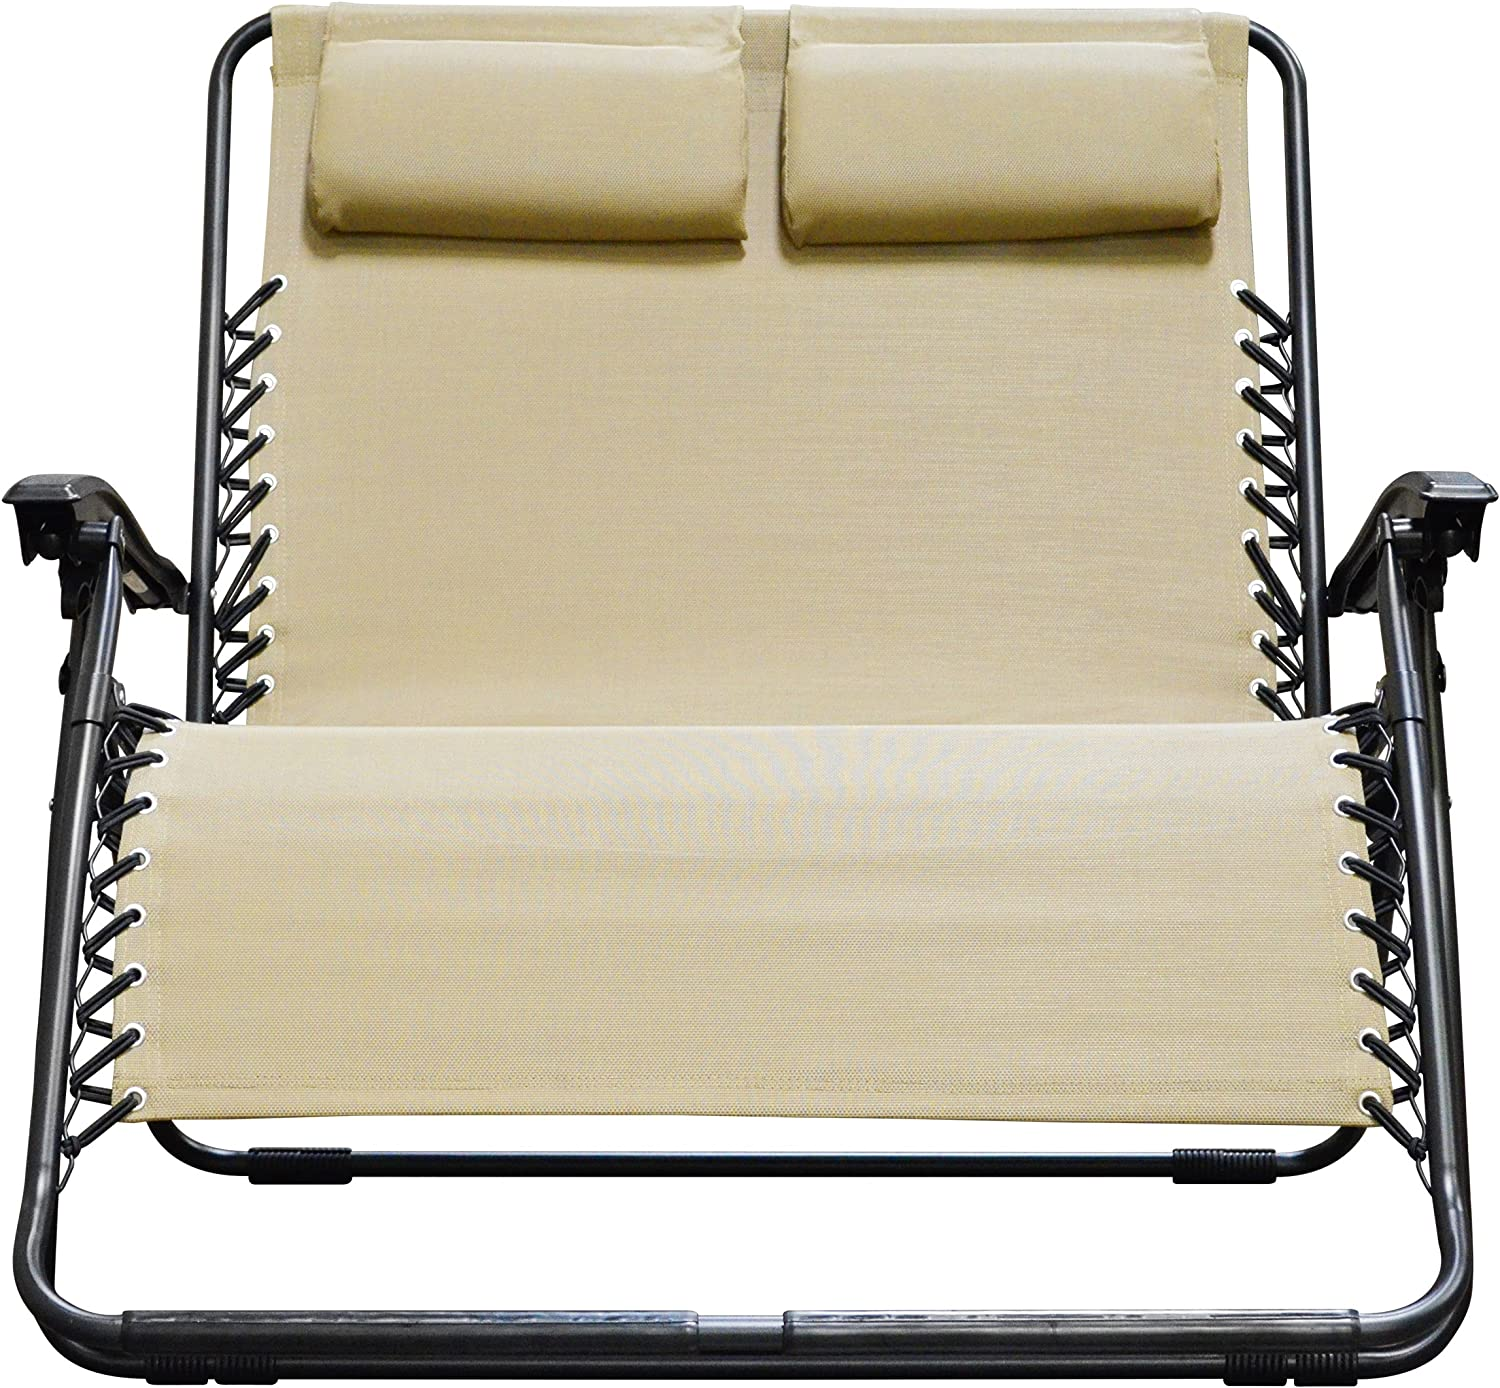 zero gravity chair for 2 people review.